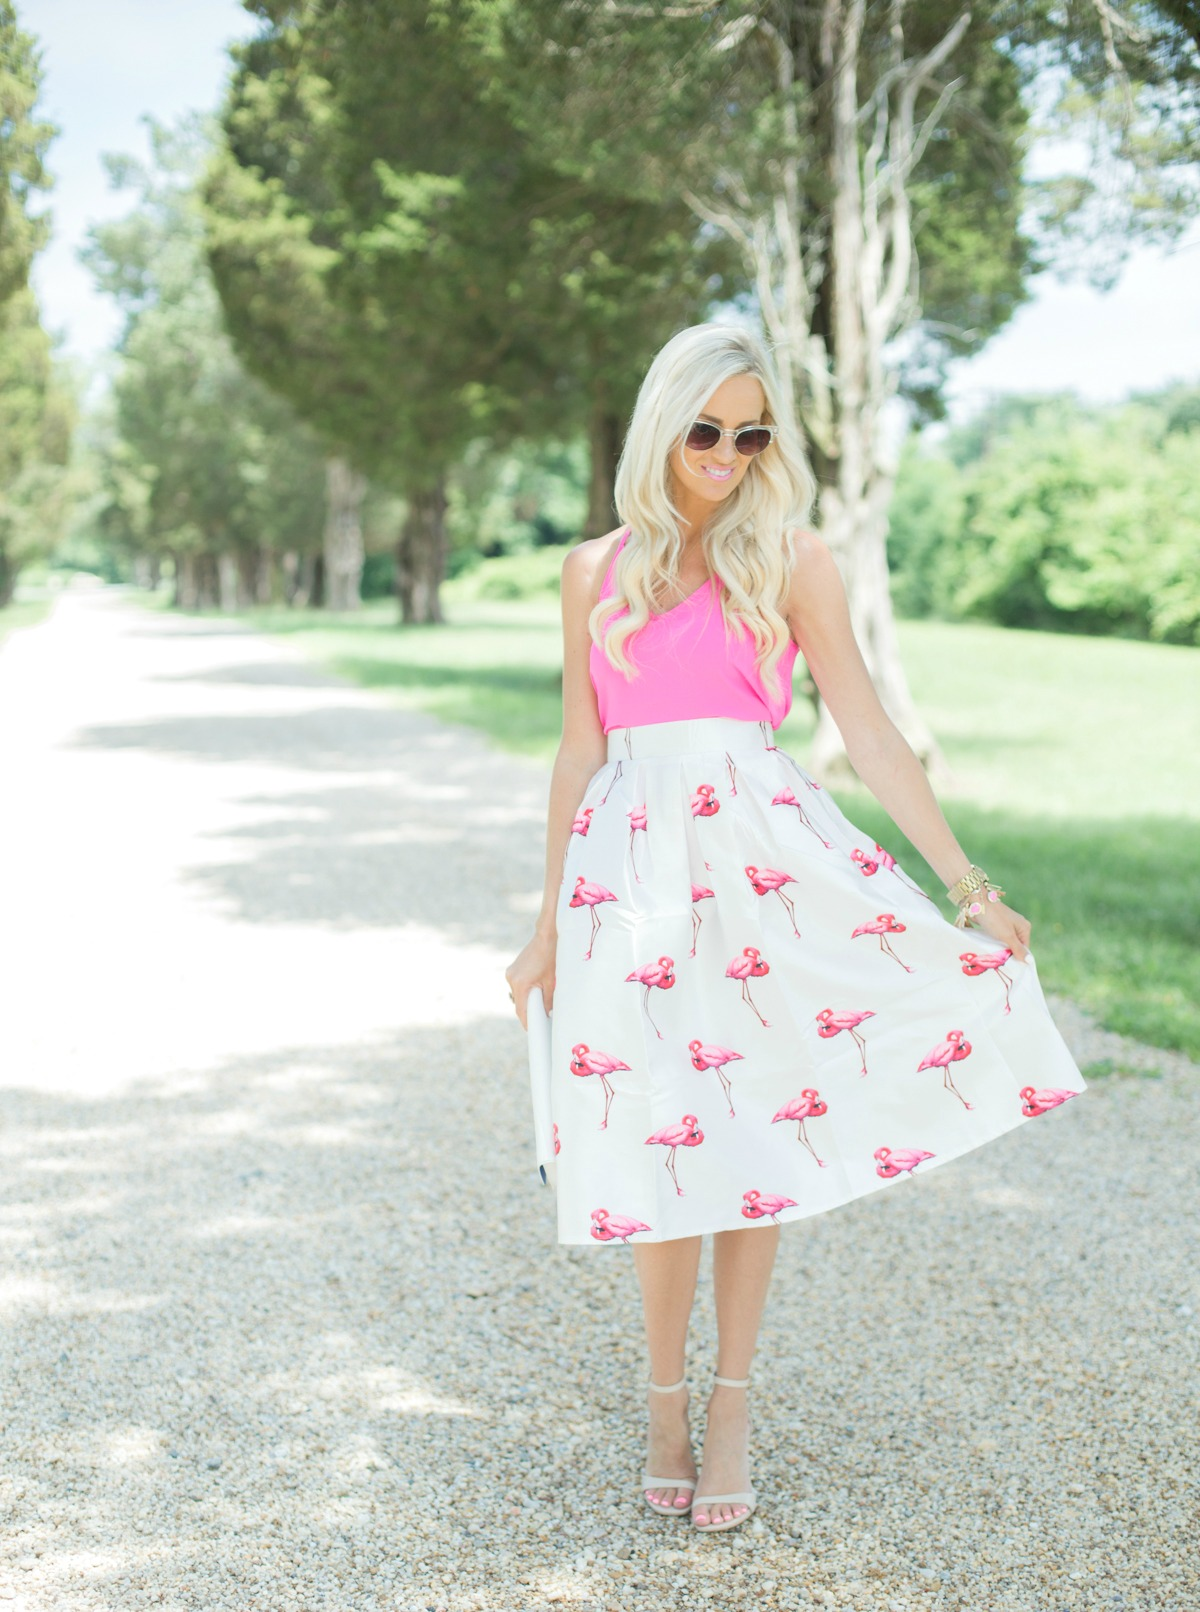 McKenna_Bleu_Fashion_Style_Travel_Blogger_Blog_DC_Summer_photo-11